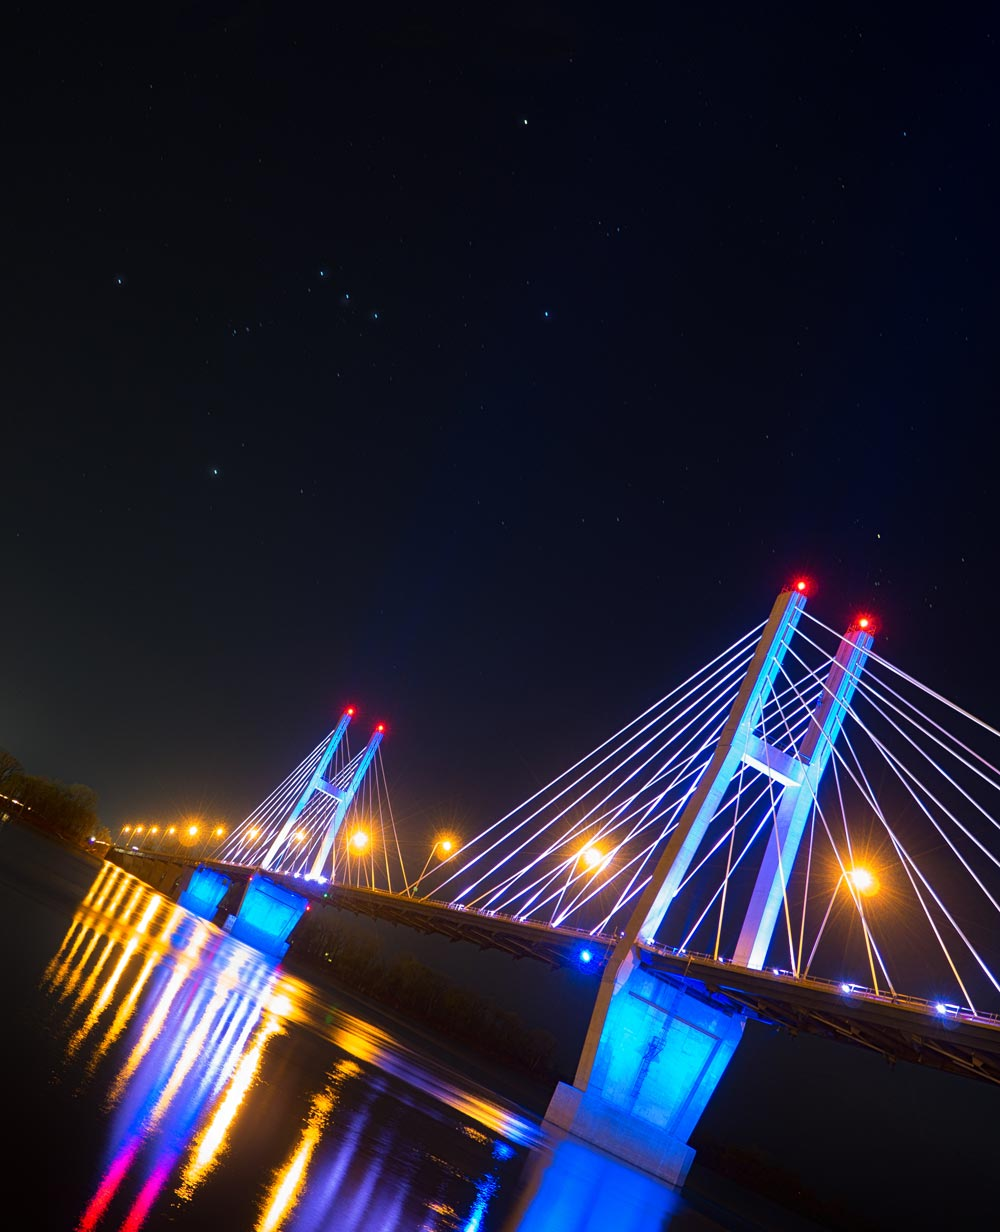 Orion over the Quincy Bridge